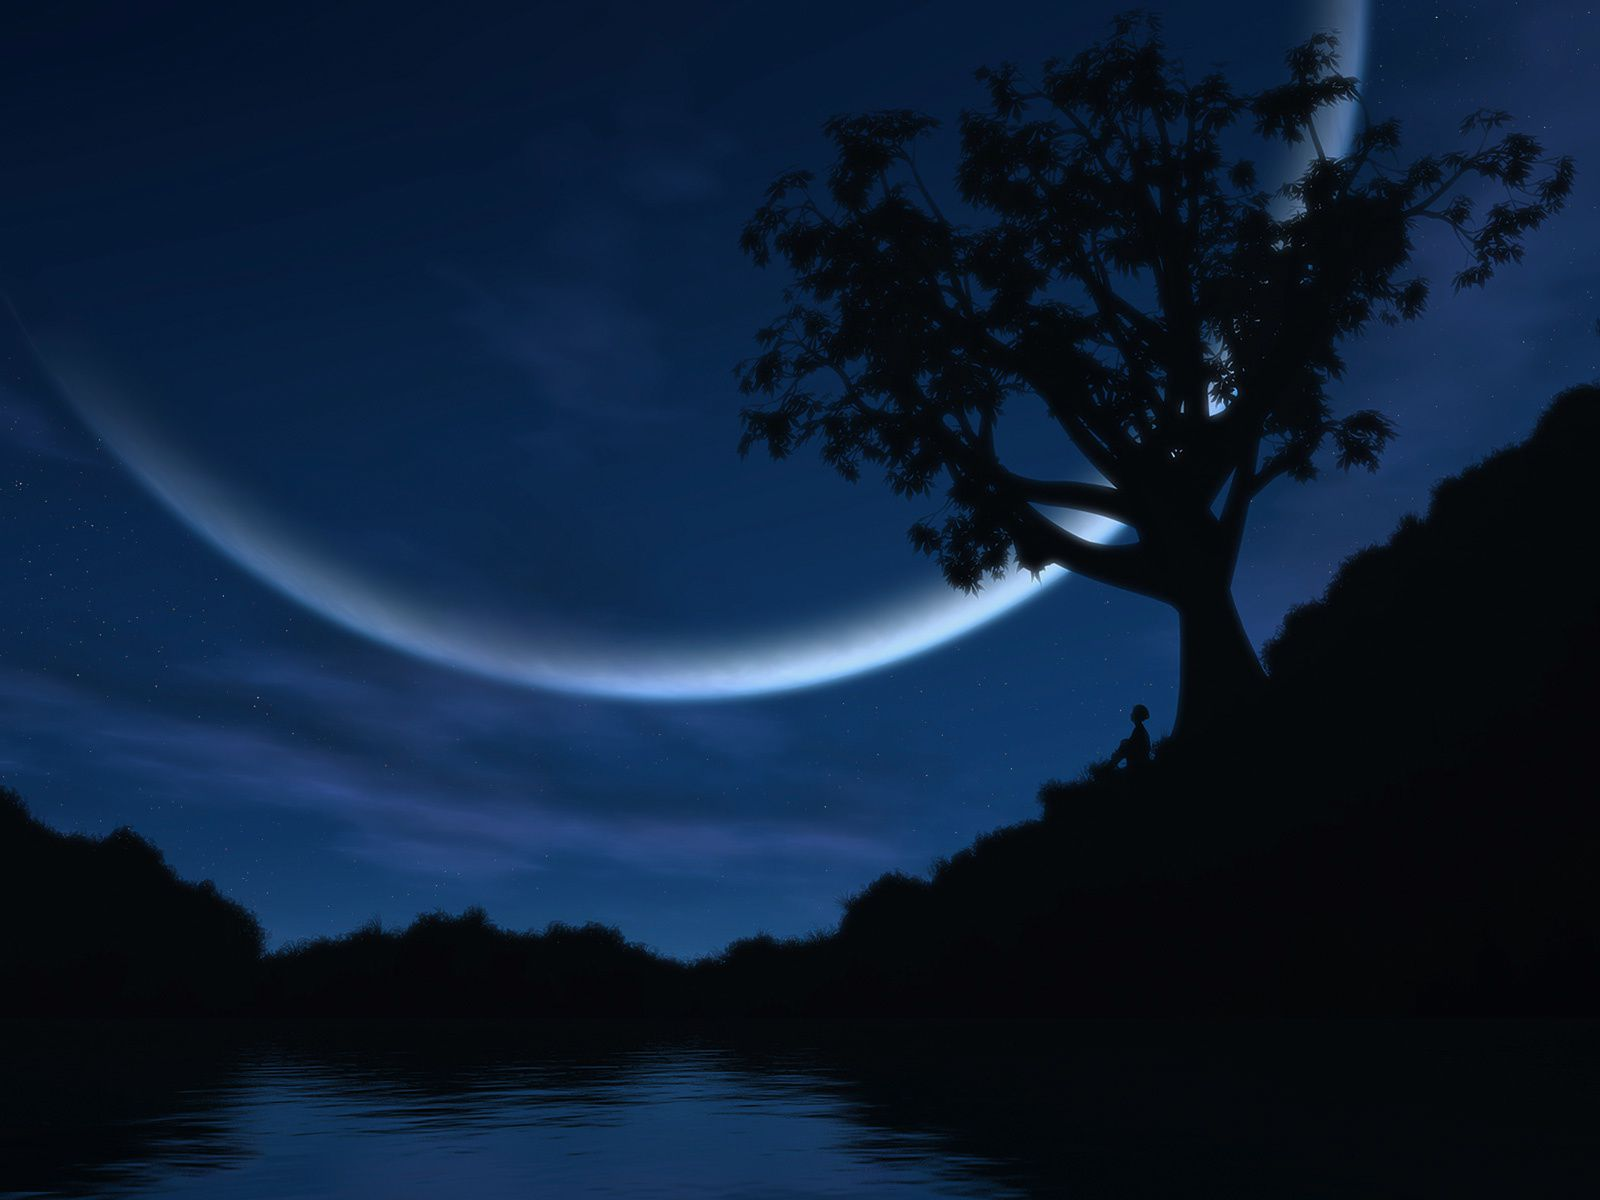 Lune - Nuit - Wallpapers - Free